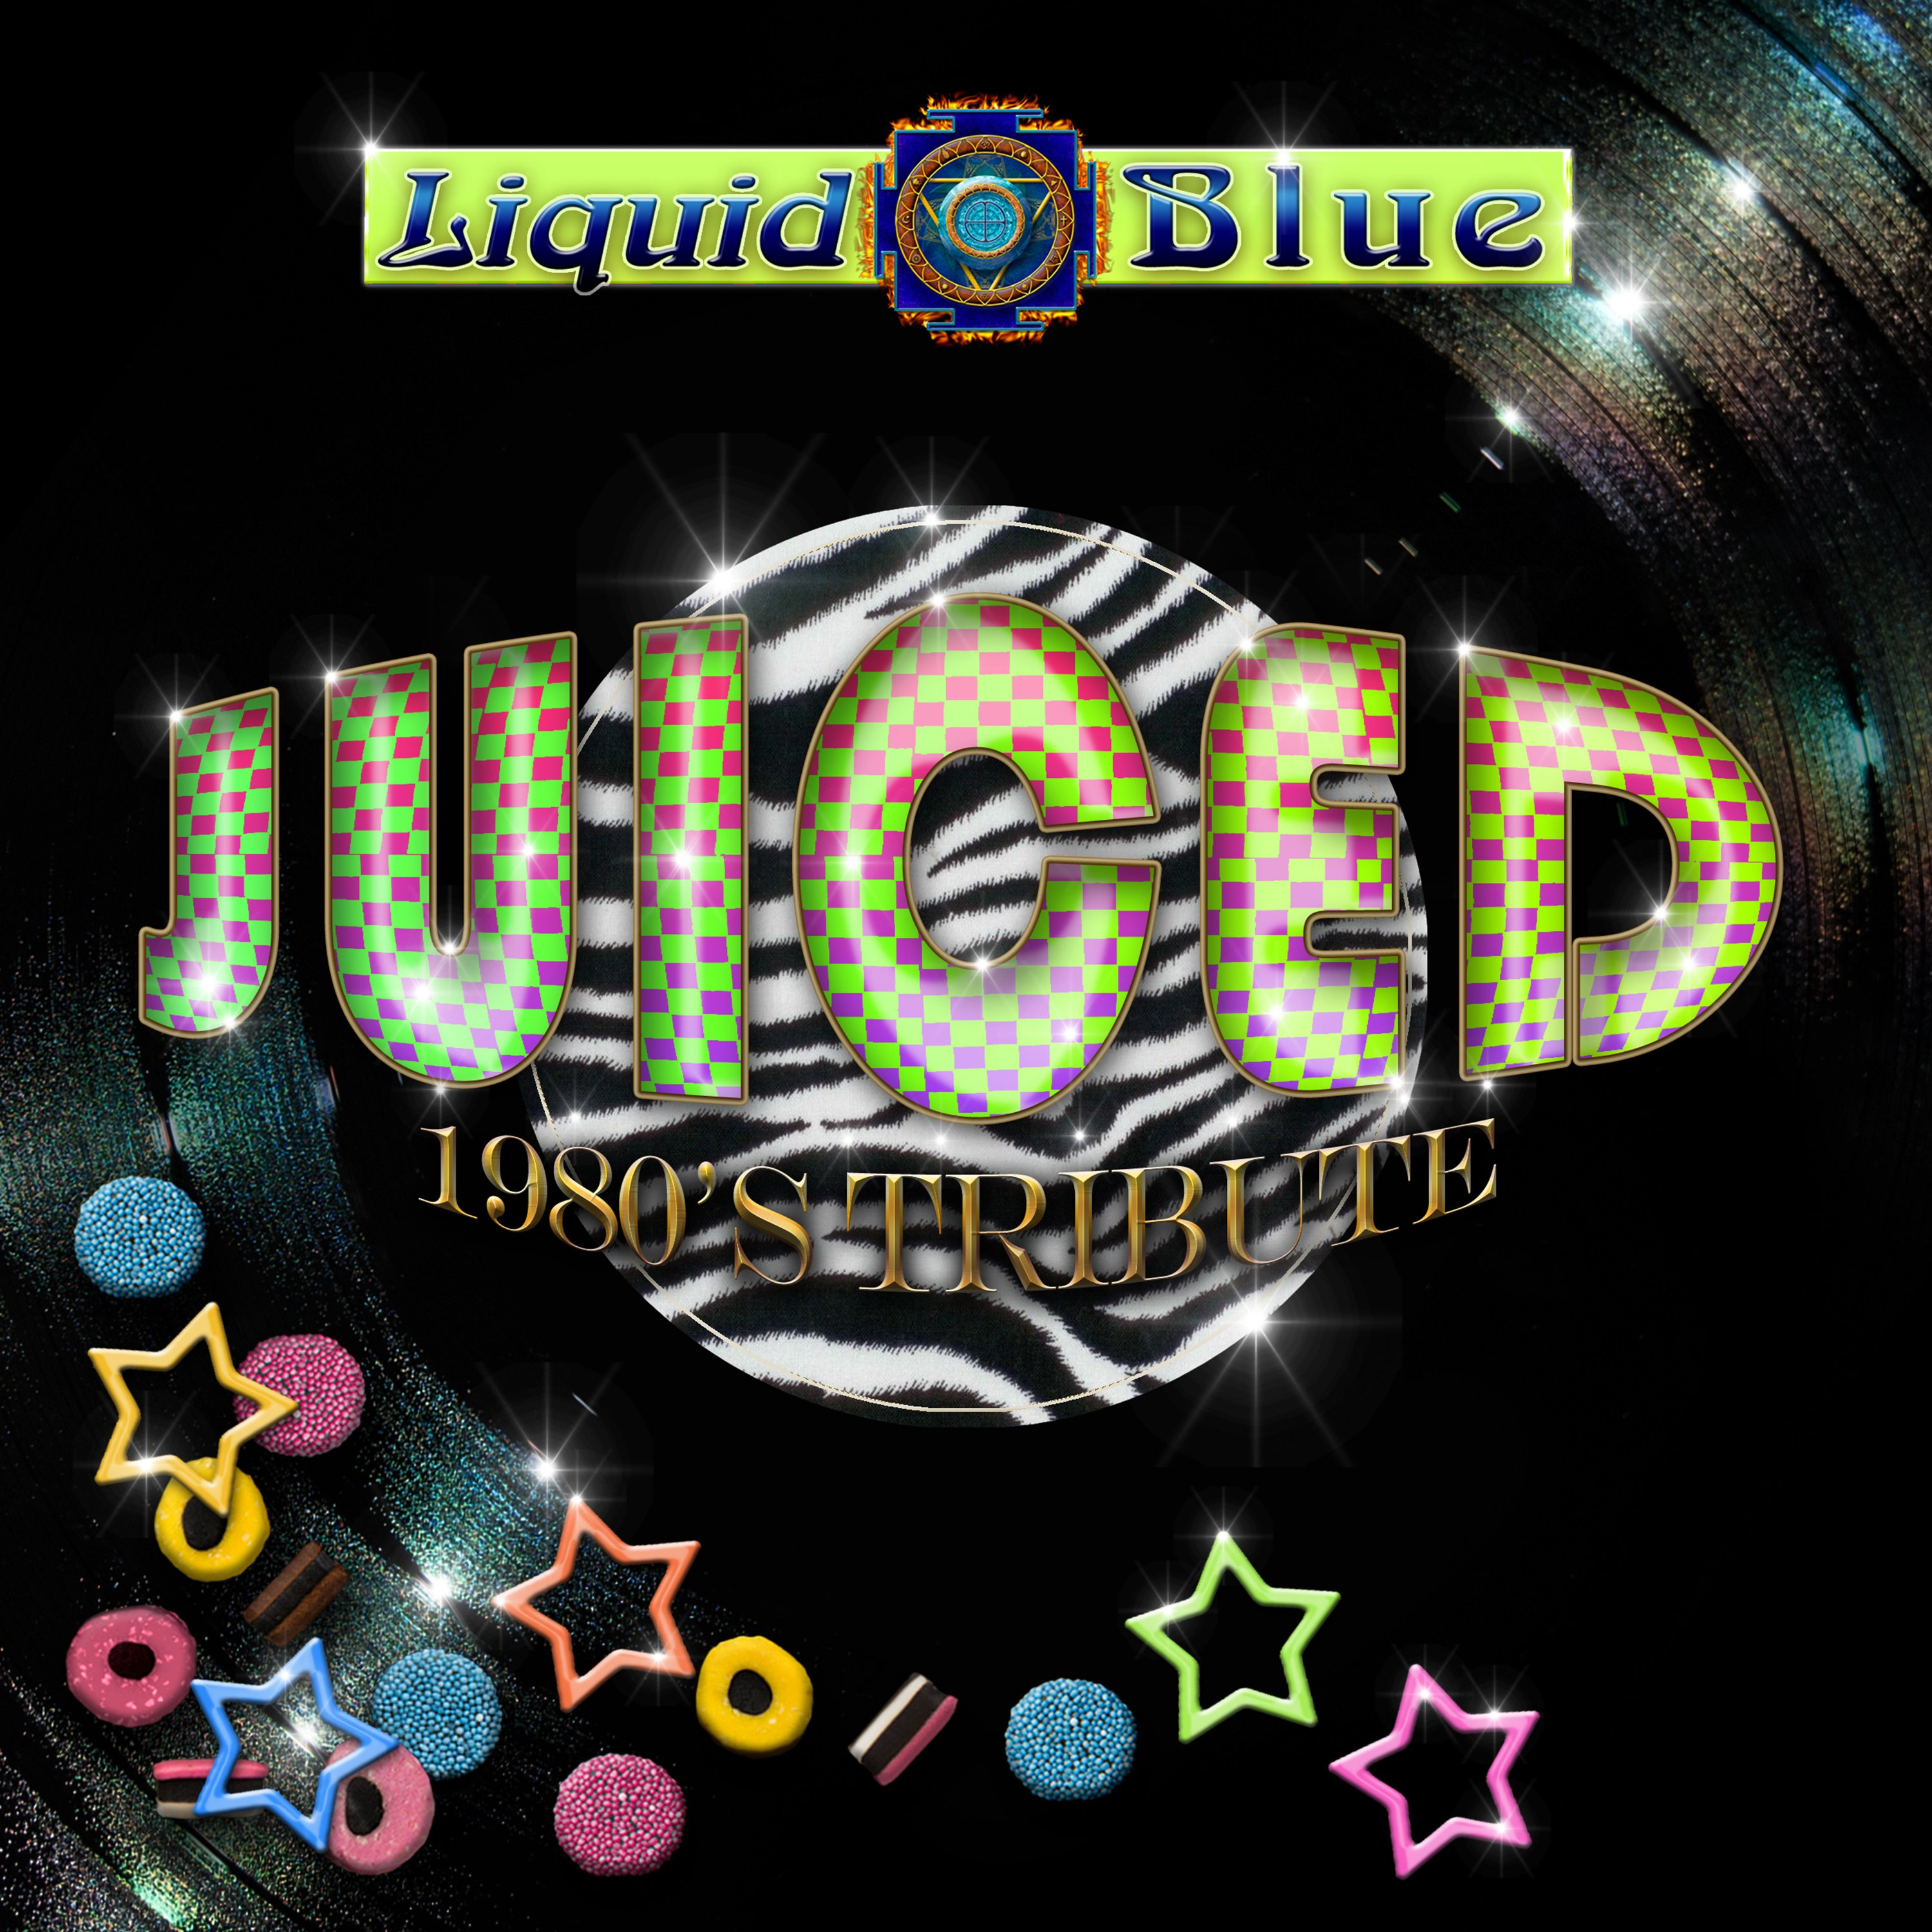 Juiced 1980's Tribute - Liquid Blue